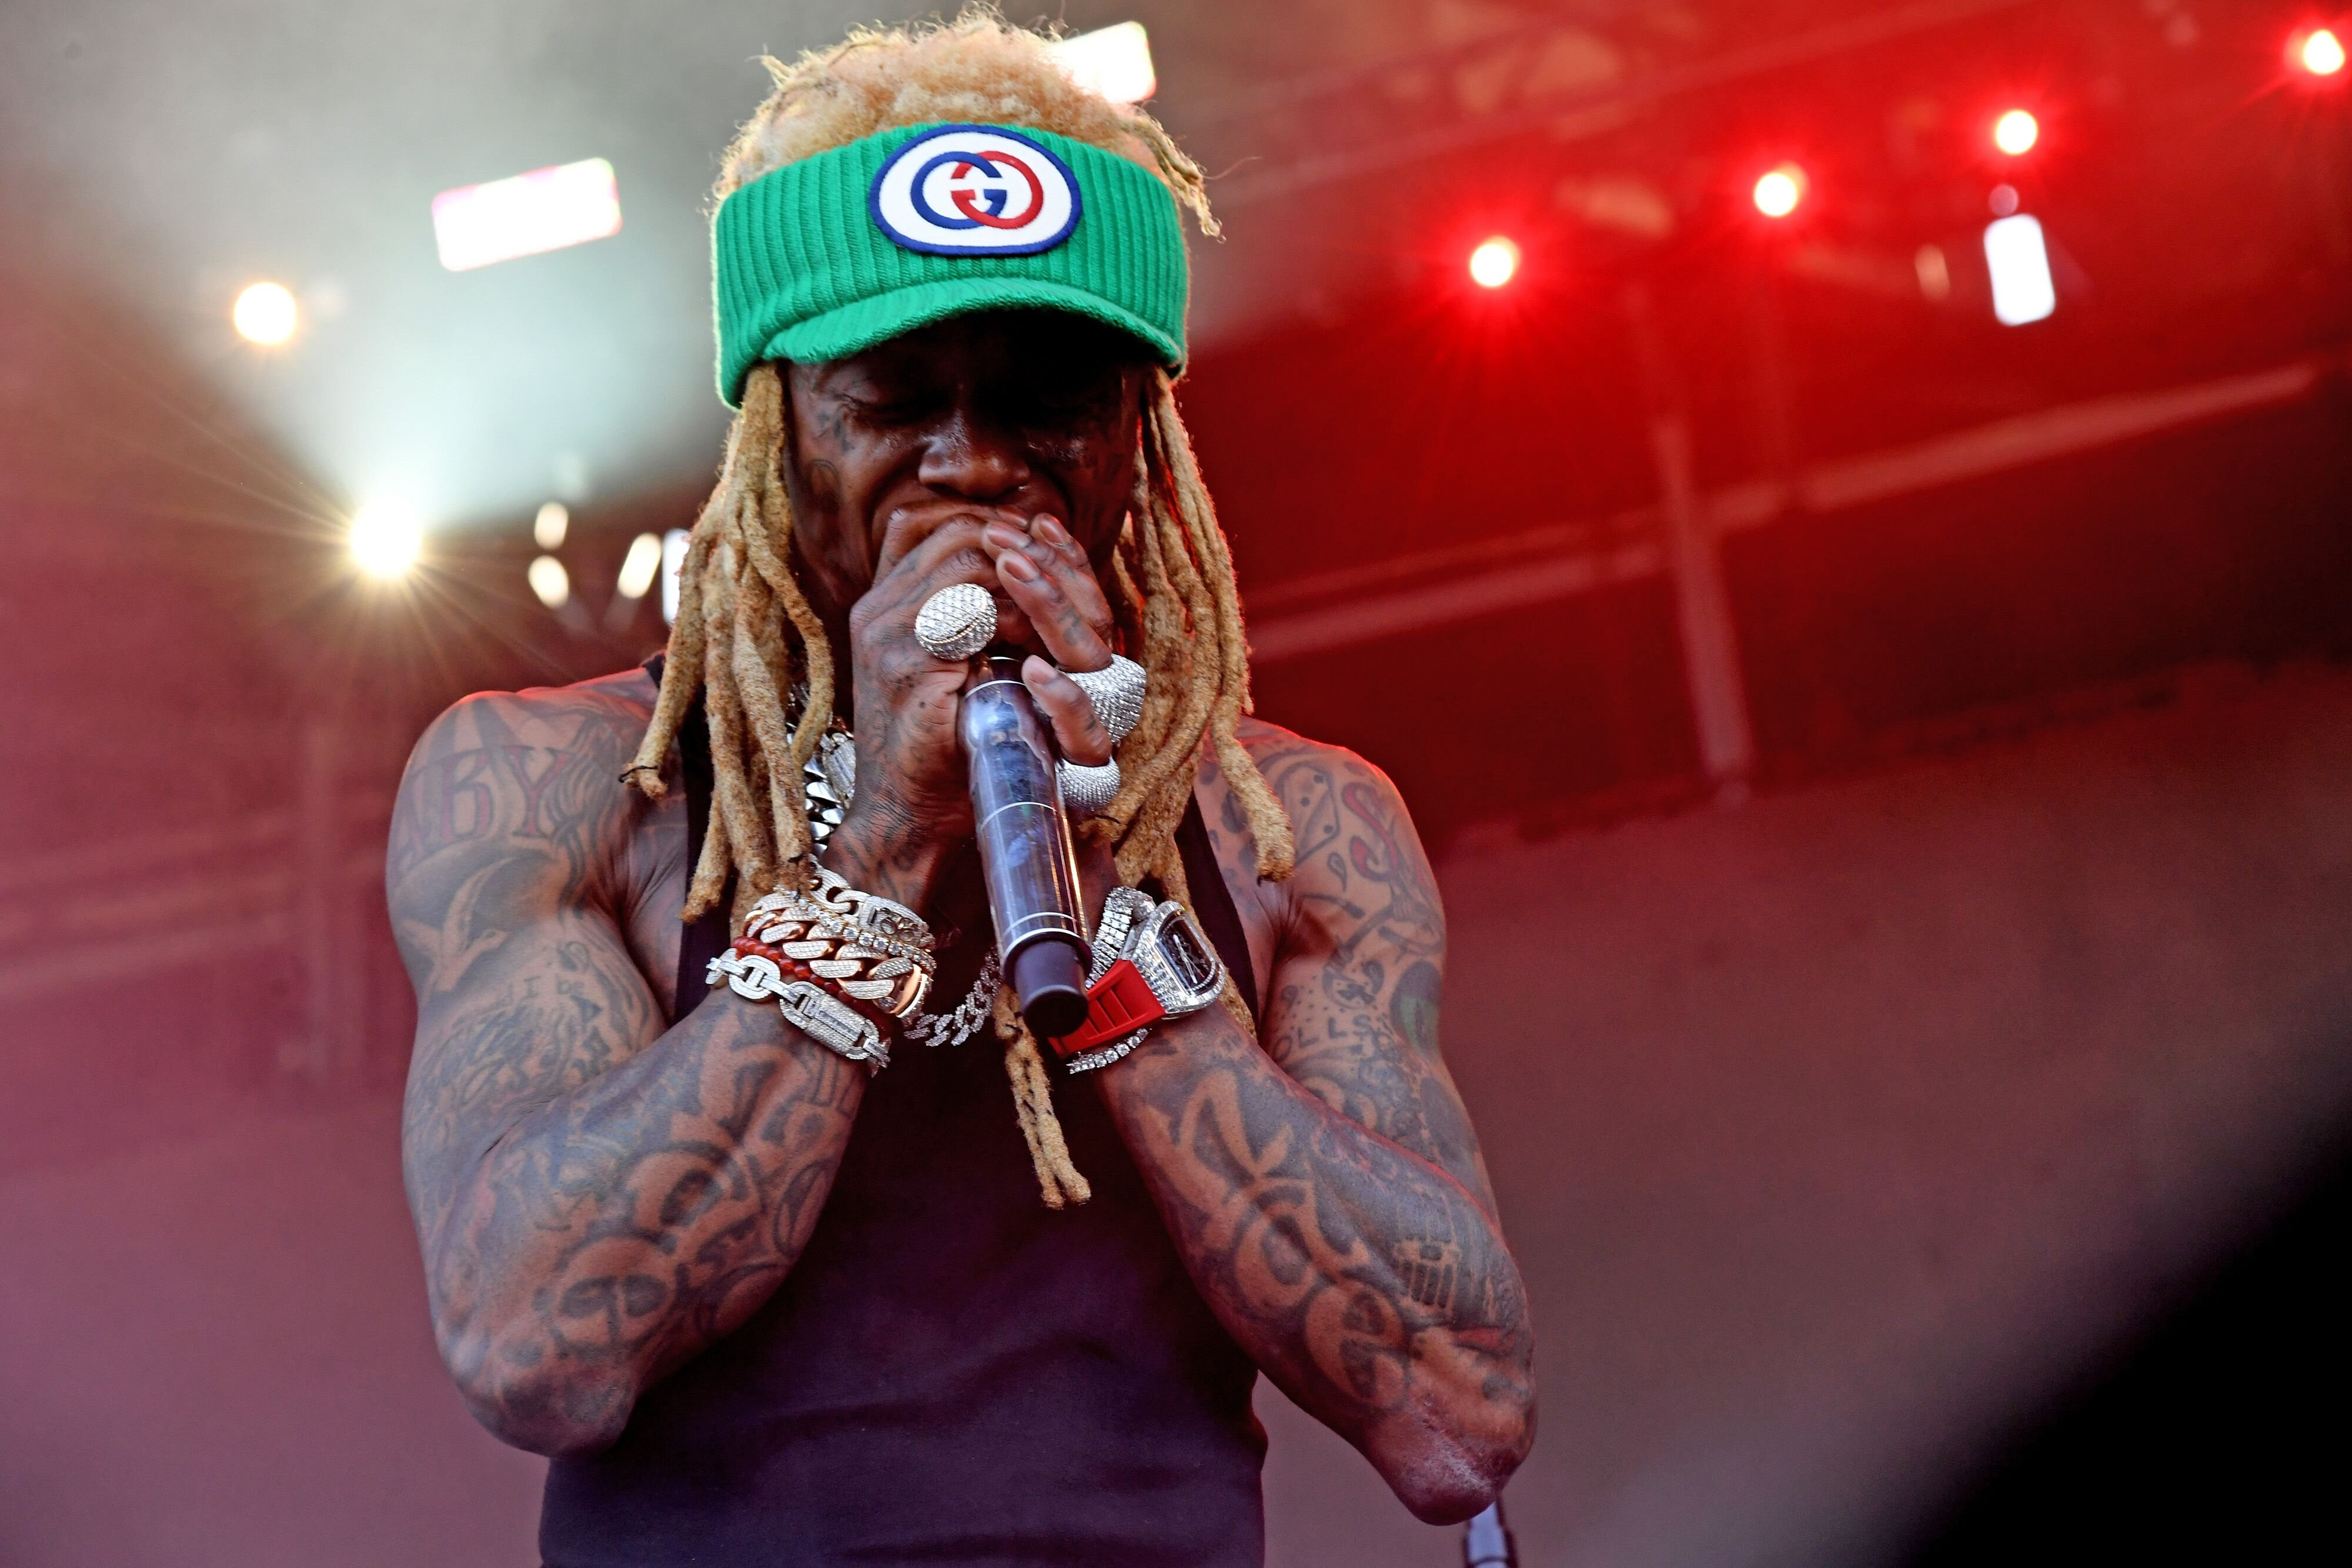 Lil Wayne performing onstage at a concert | Source: Getty Images/GlobalImagesUkraine